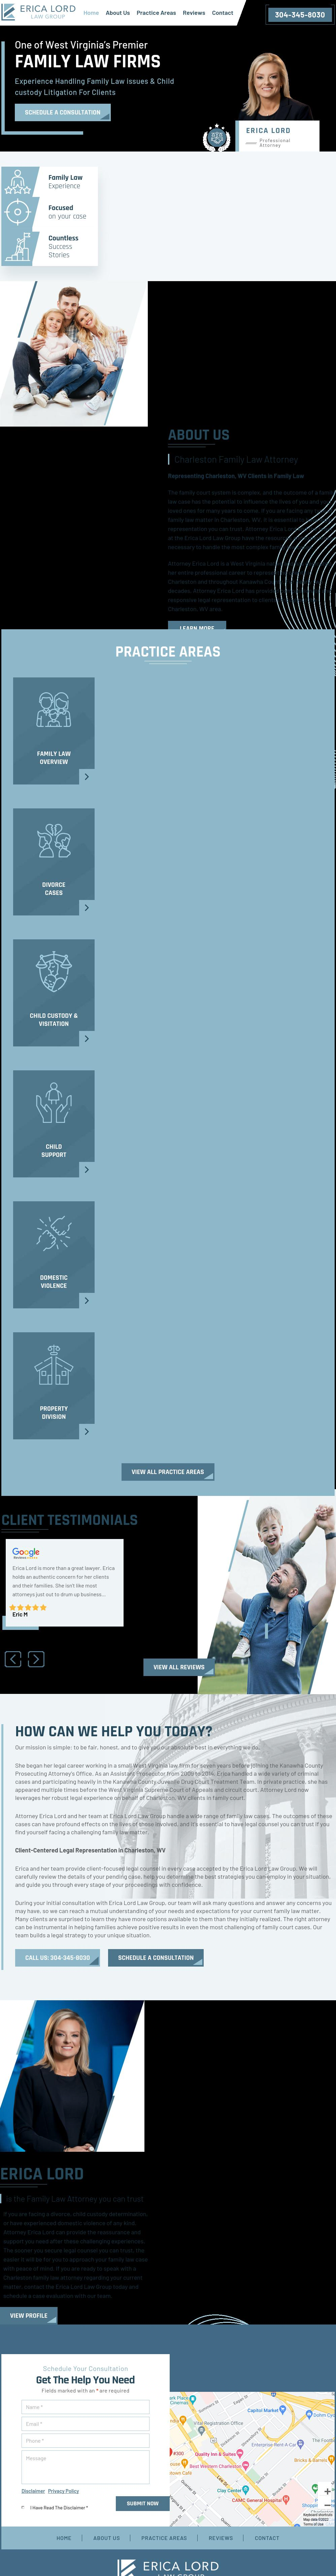 The Law Offices of Erica Lord, PLLC - Charleston WV Lawyers